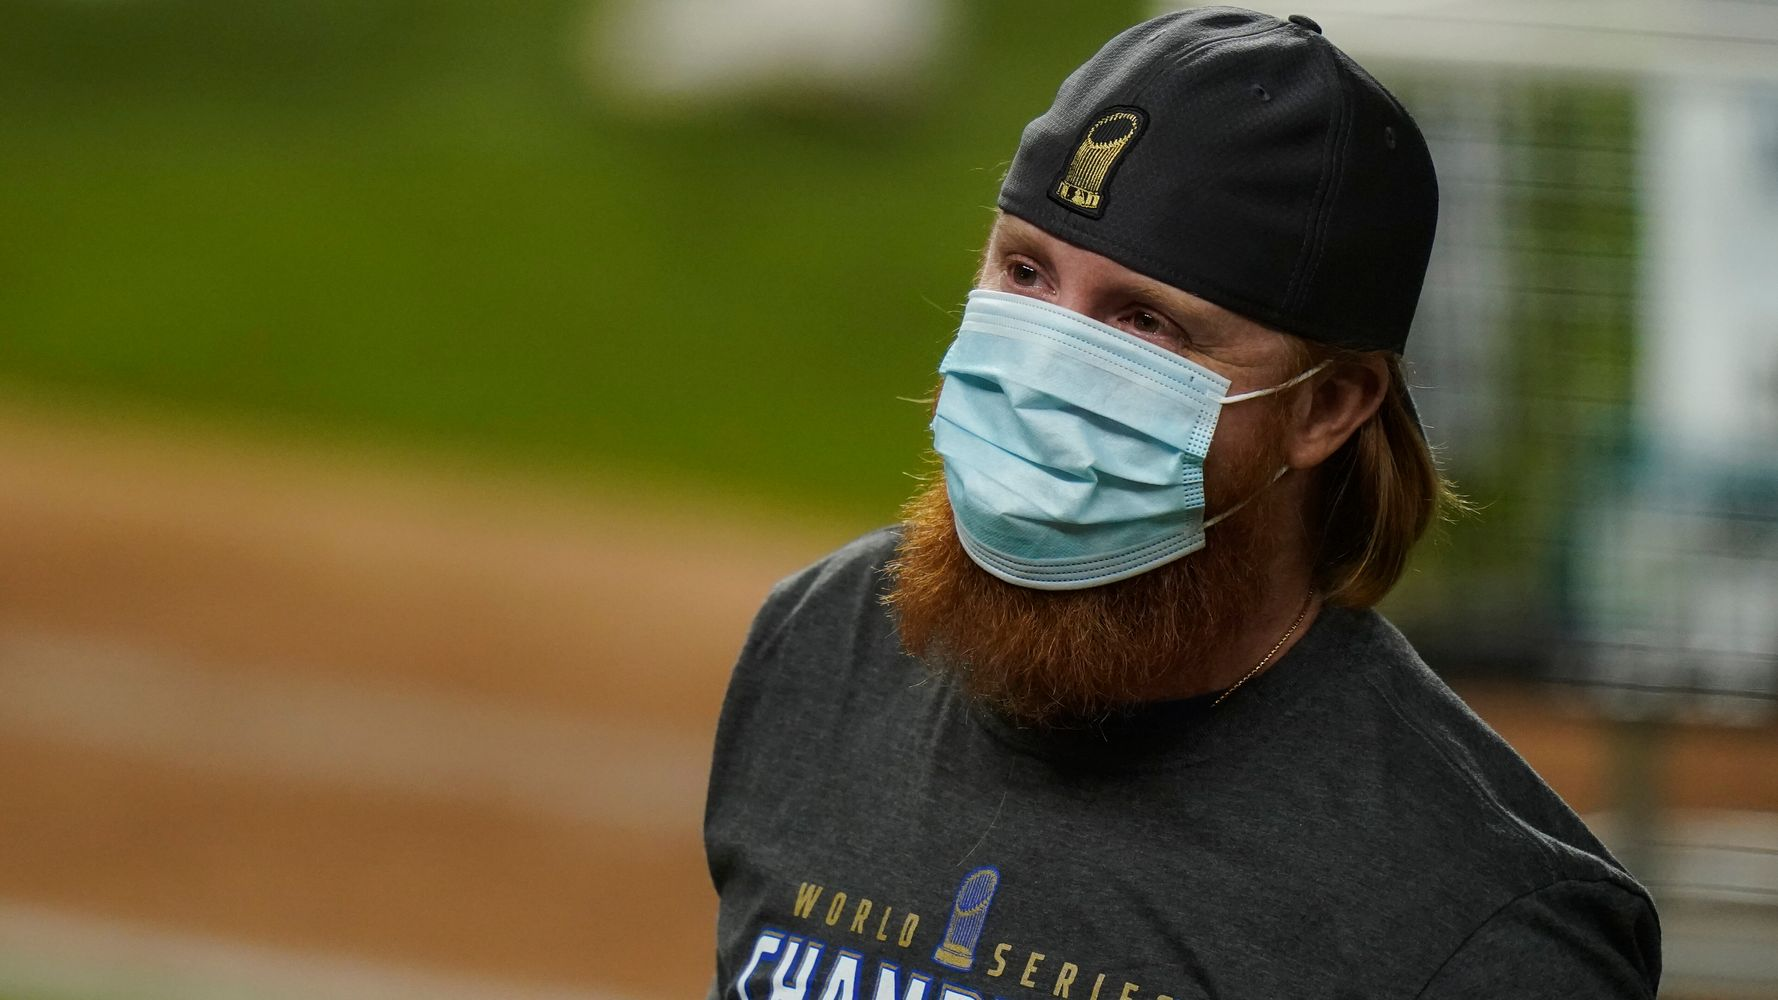 MLB To Investigate Justin Turner For Intentionally Exposing Team To Coronavirus